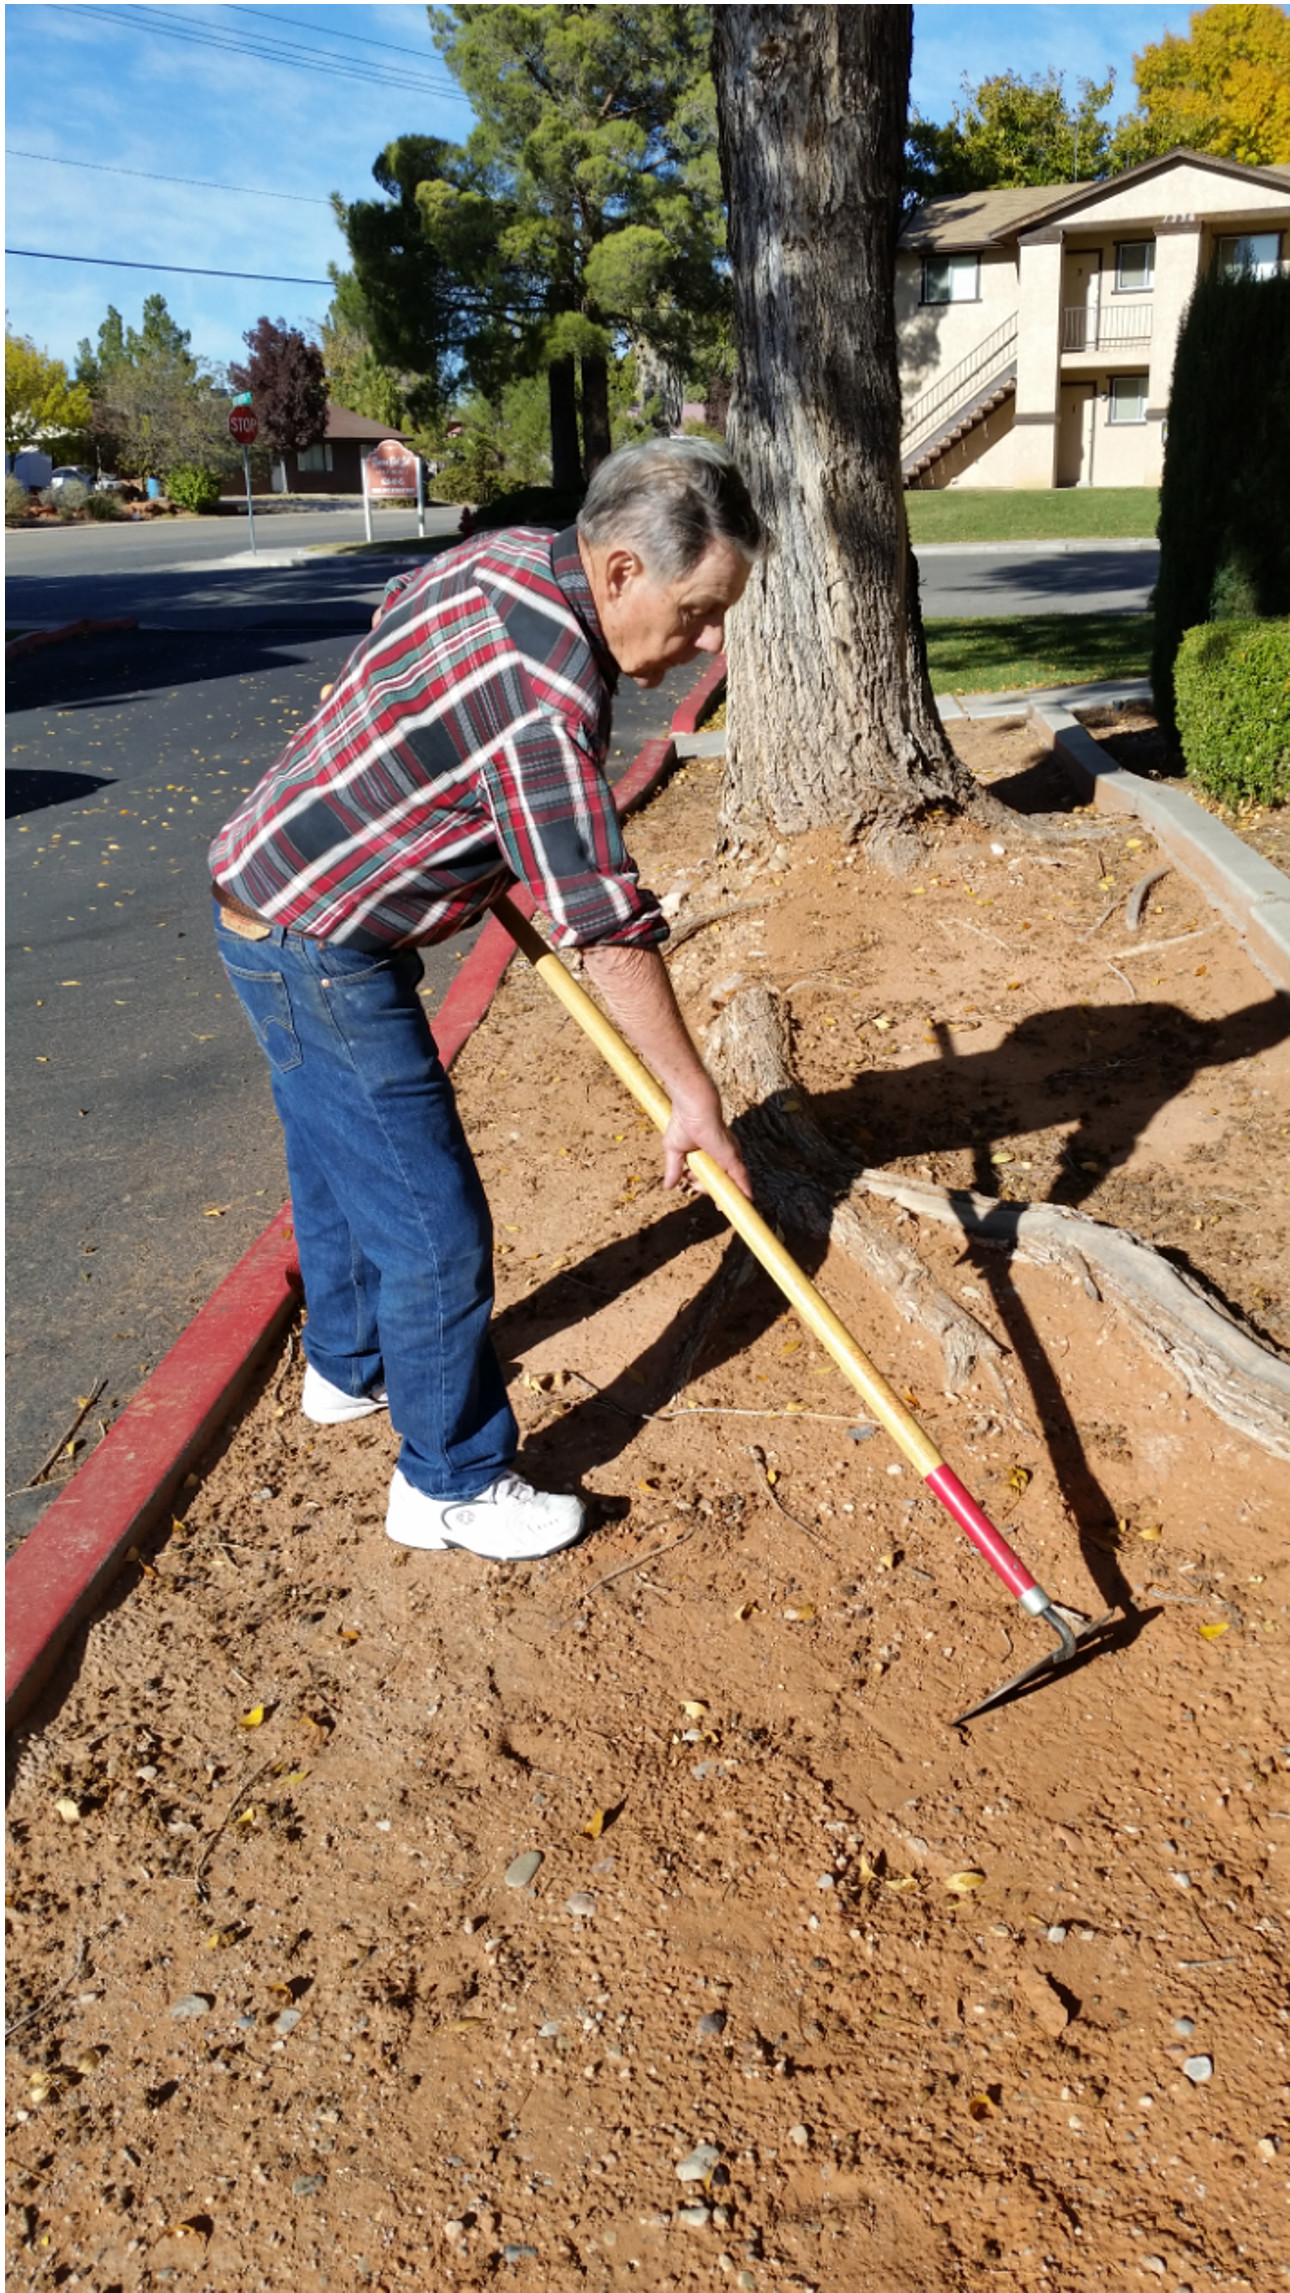 St. George resident Pearson Davis spends his days cleaning up vacant lots and common areas on the west side of St. George. The man's three-wheeled bicycle was stolen Monday; local residents and others have already funded a replacement for him, St. George, Utah, Nov. 30, 2016 | Photo courtesy of Dean Rein, St. George News